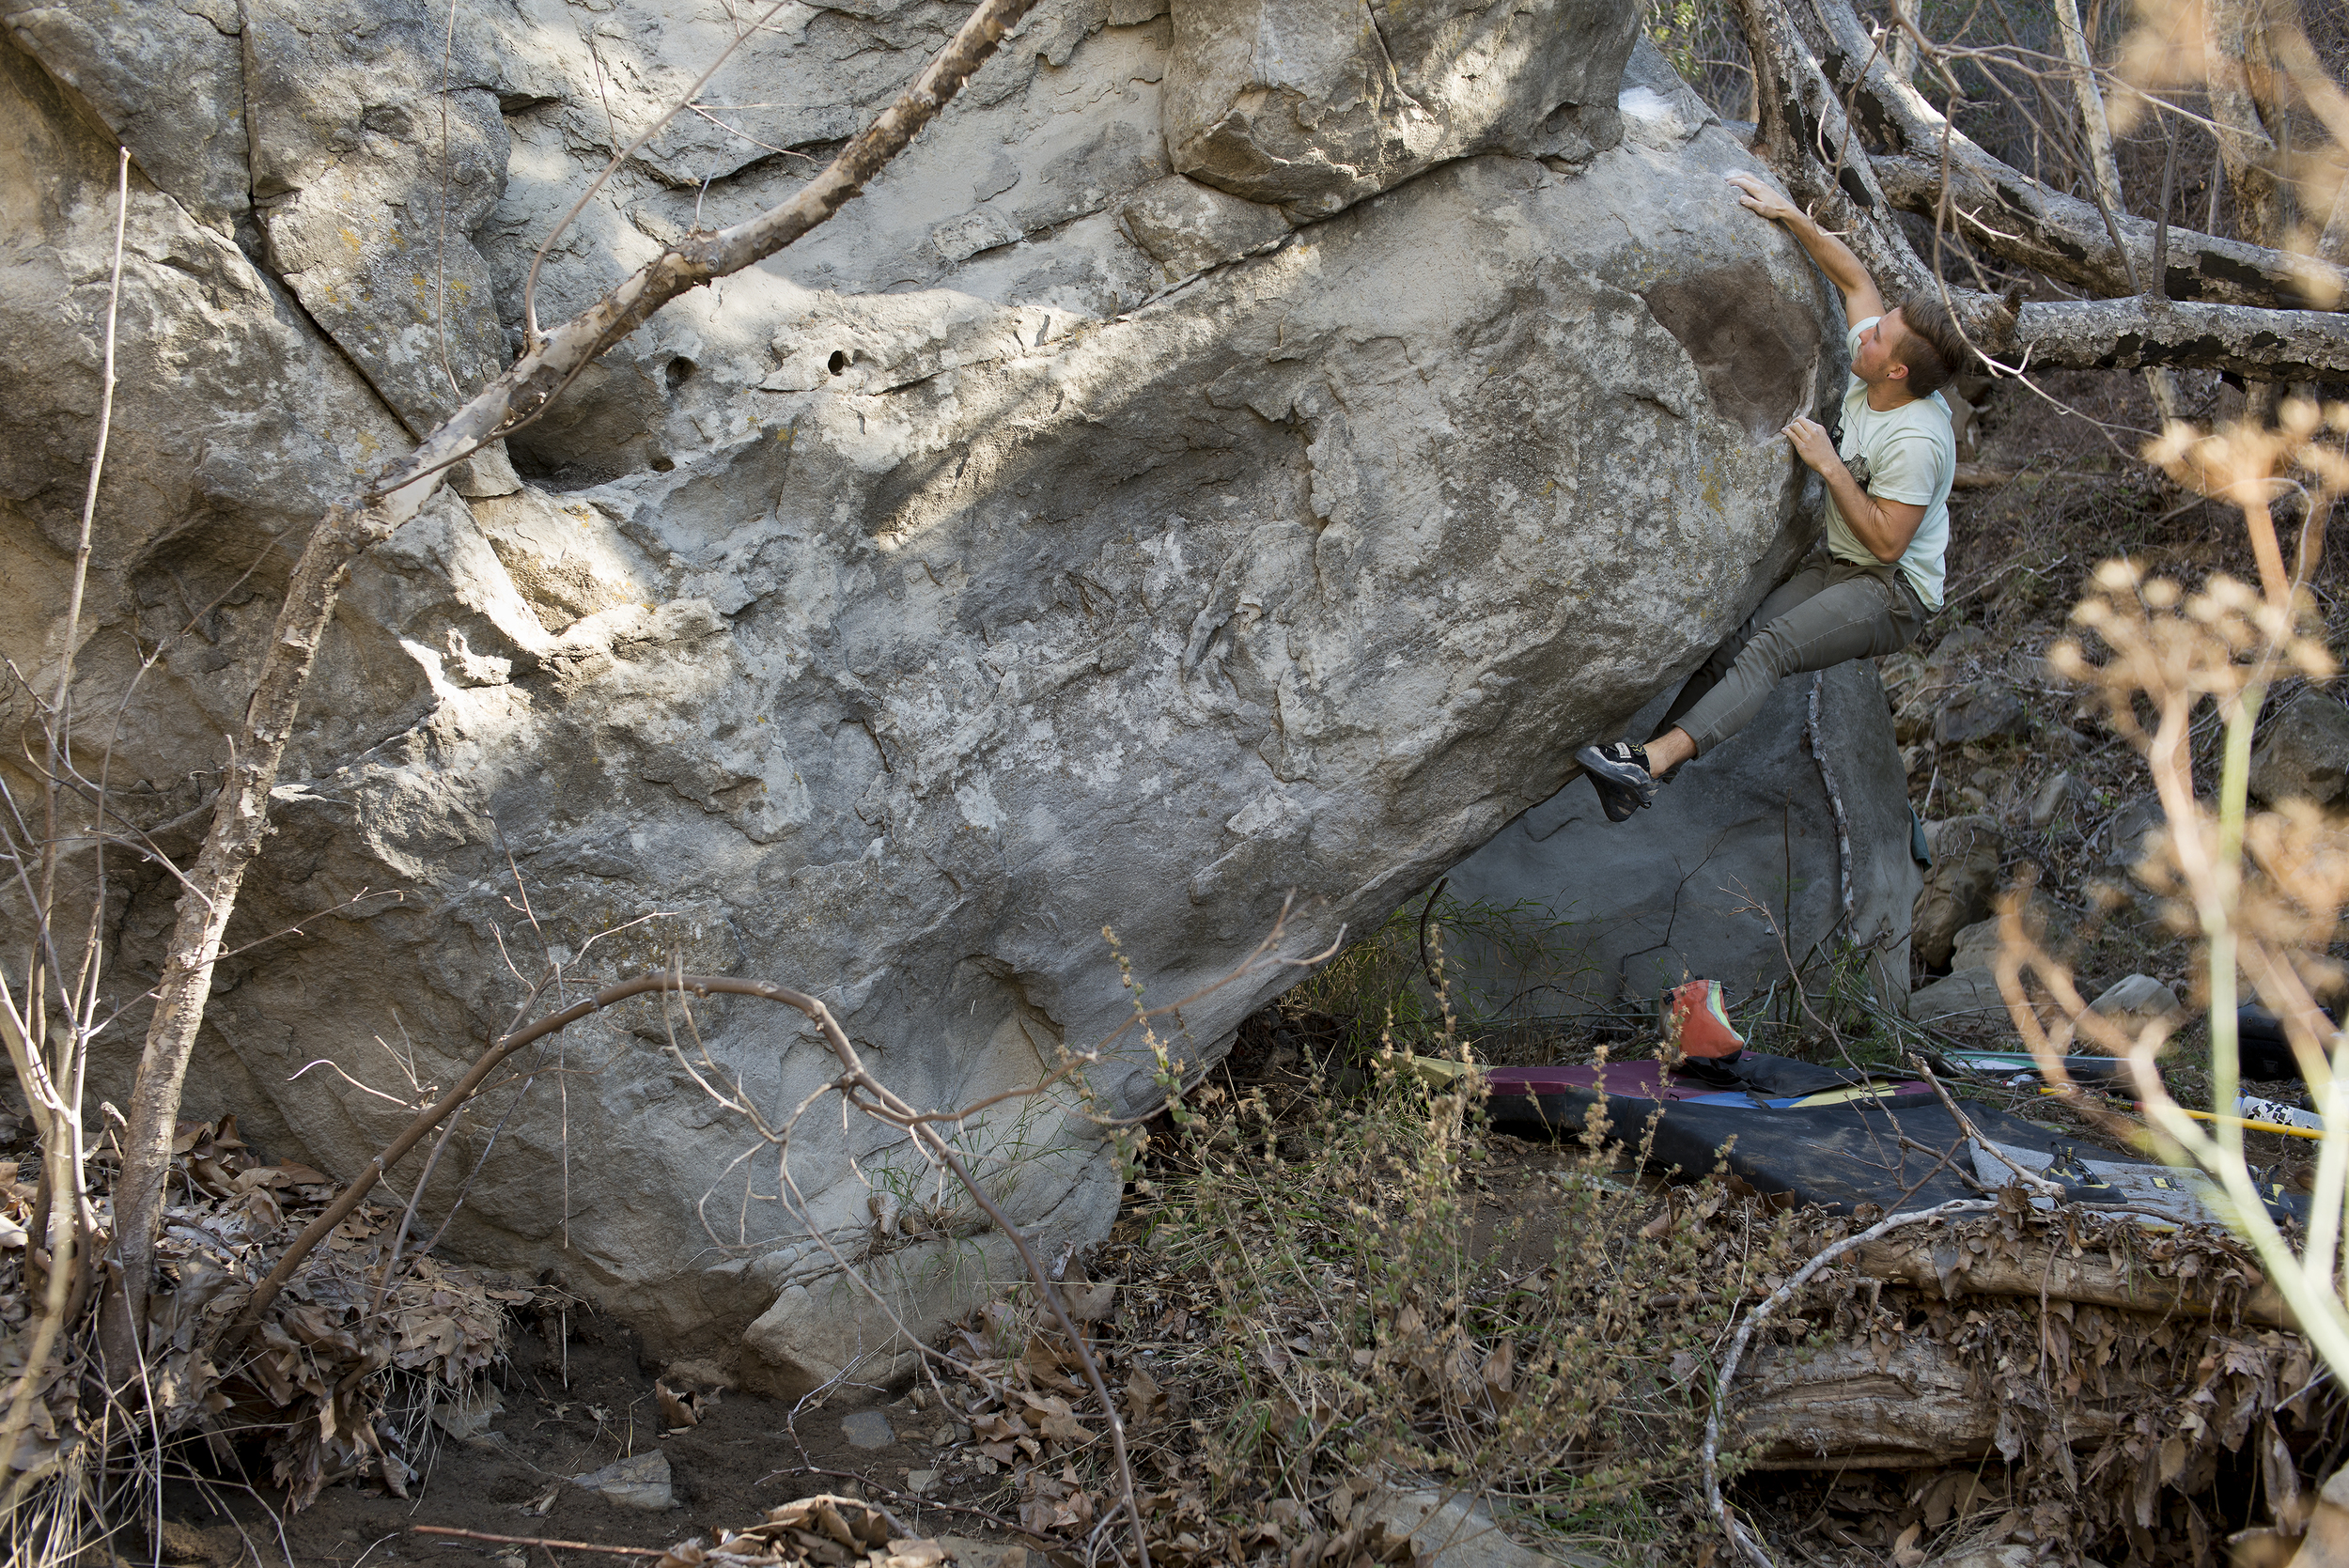 Trevor Seck on getting the FA ofnewly developed moderate deep in the Santa Monica Mountains